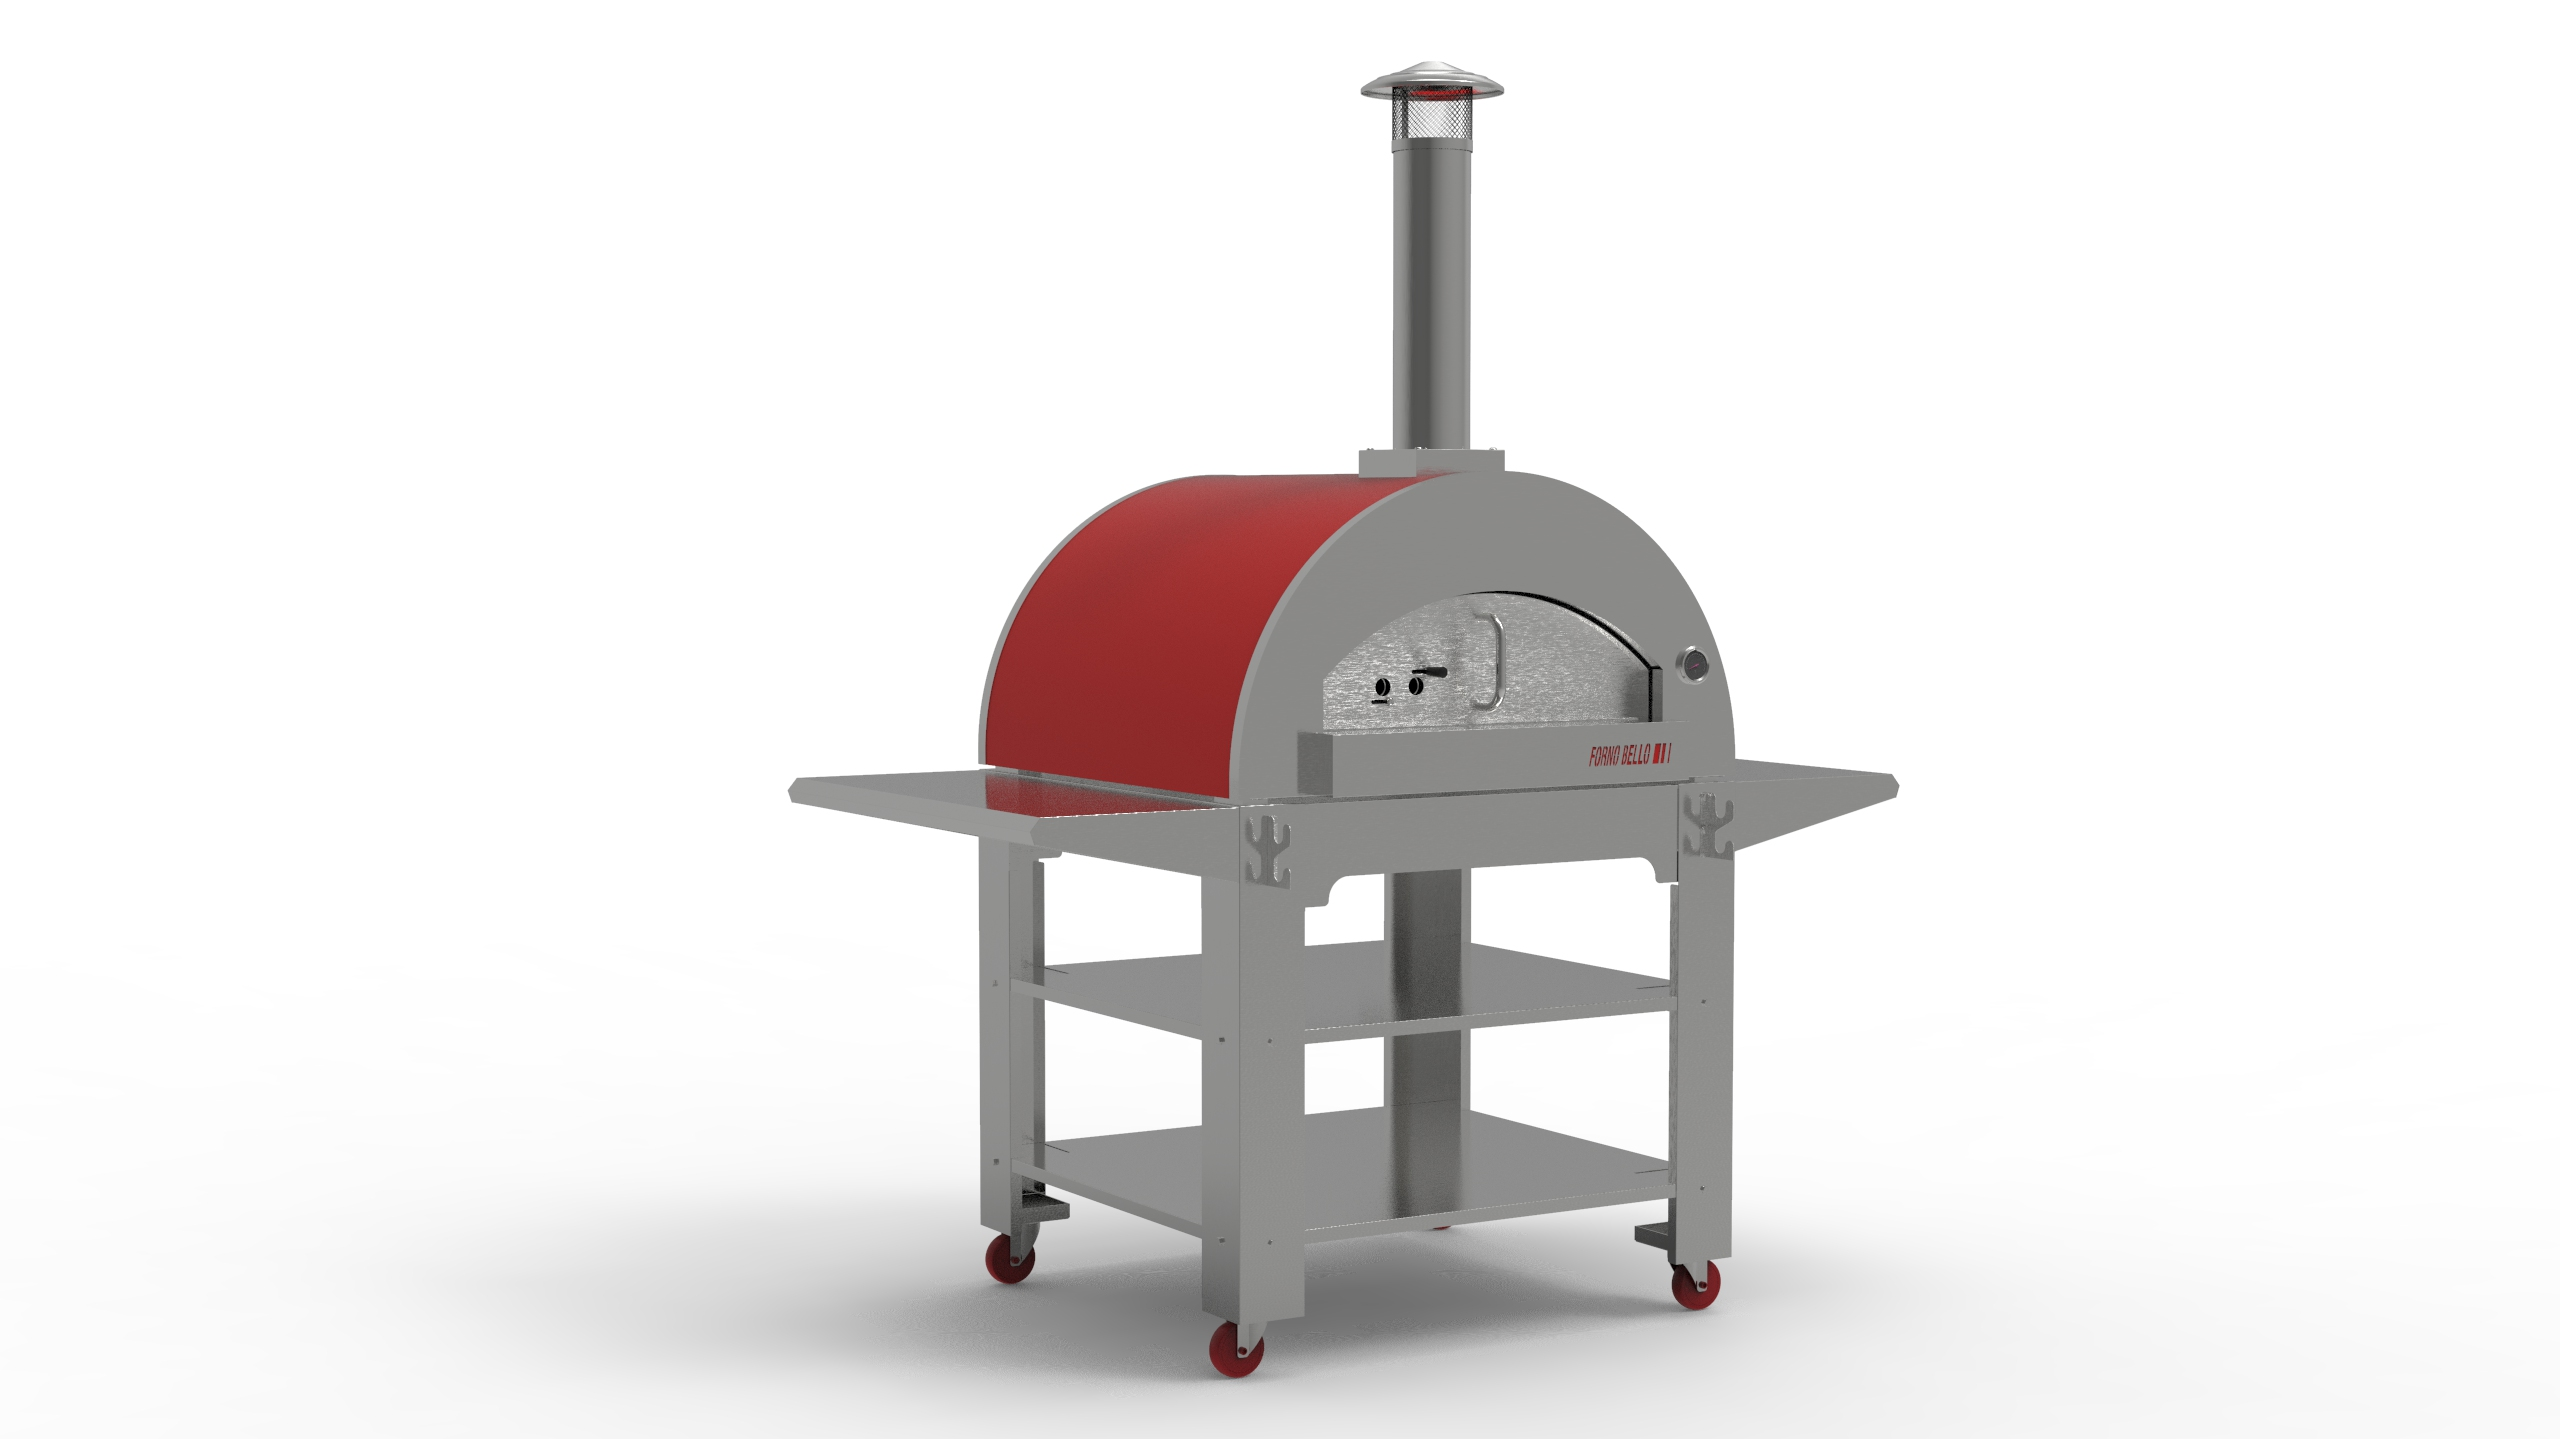 Forno Family Oven Extra Large Oven